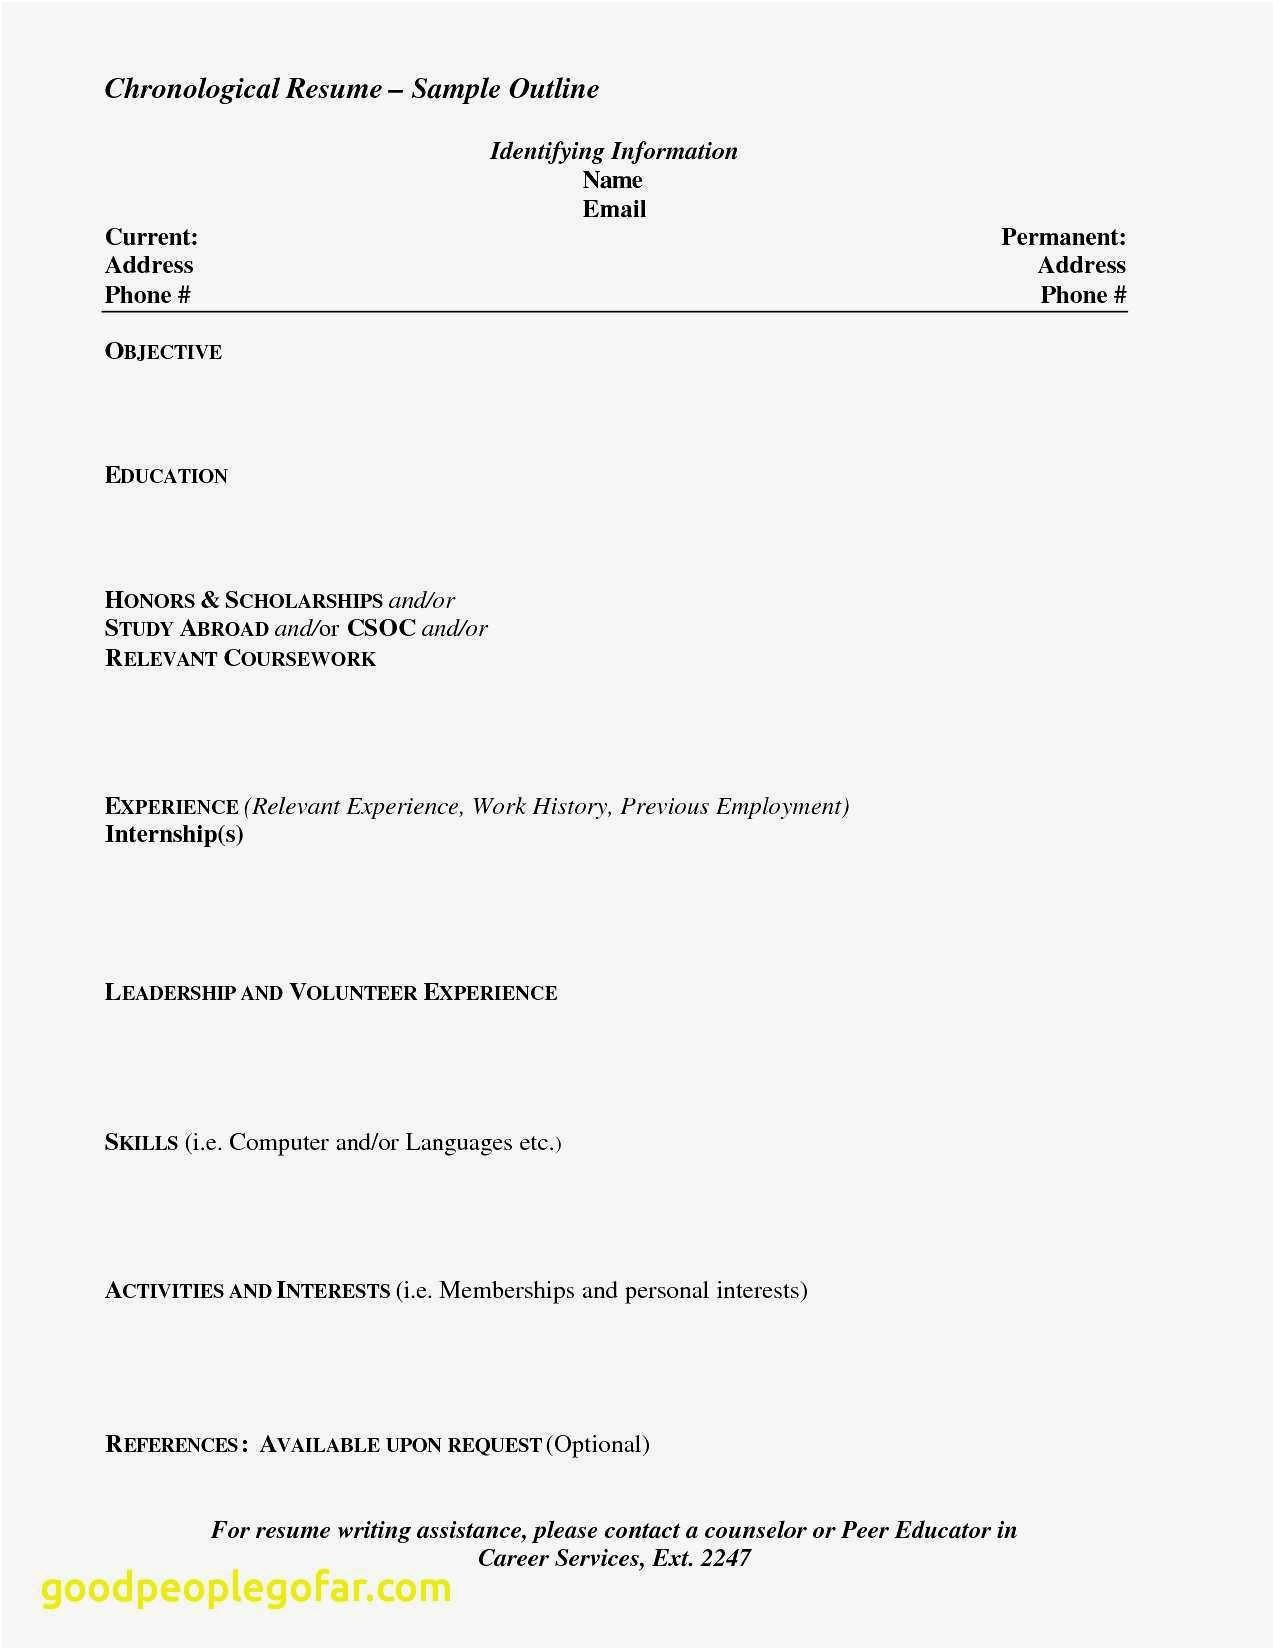 Customer Support Resume - Good Objective Statement for Resume for Customer Service Free